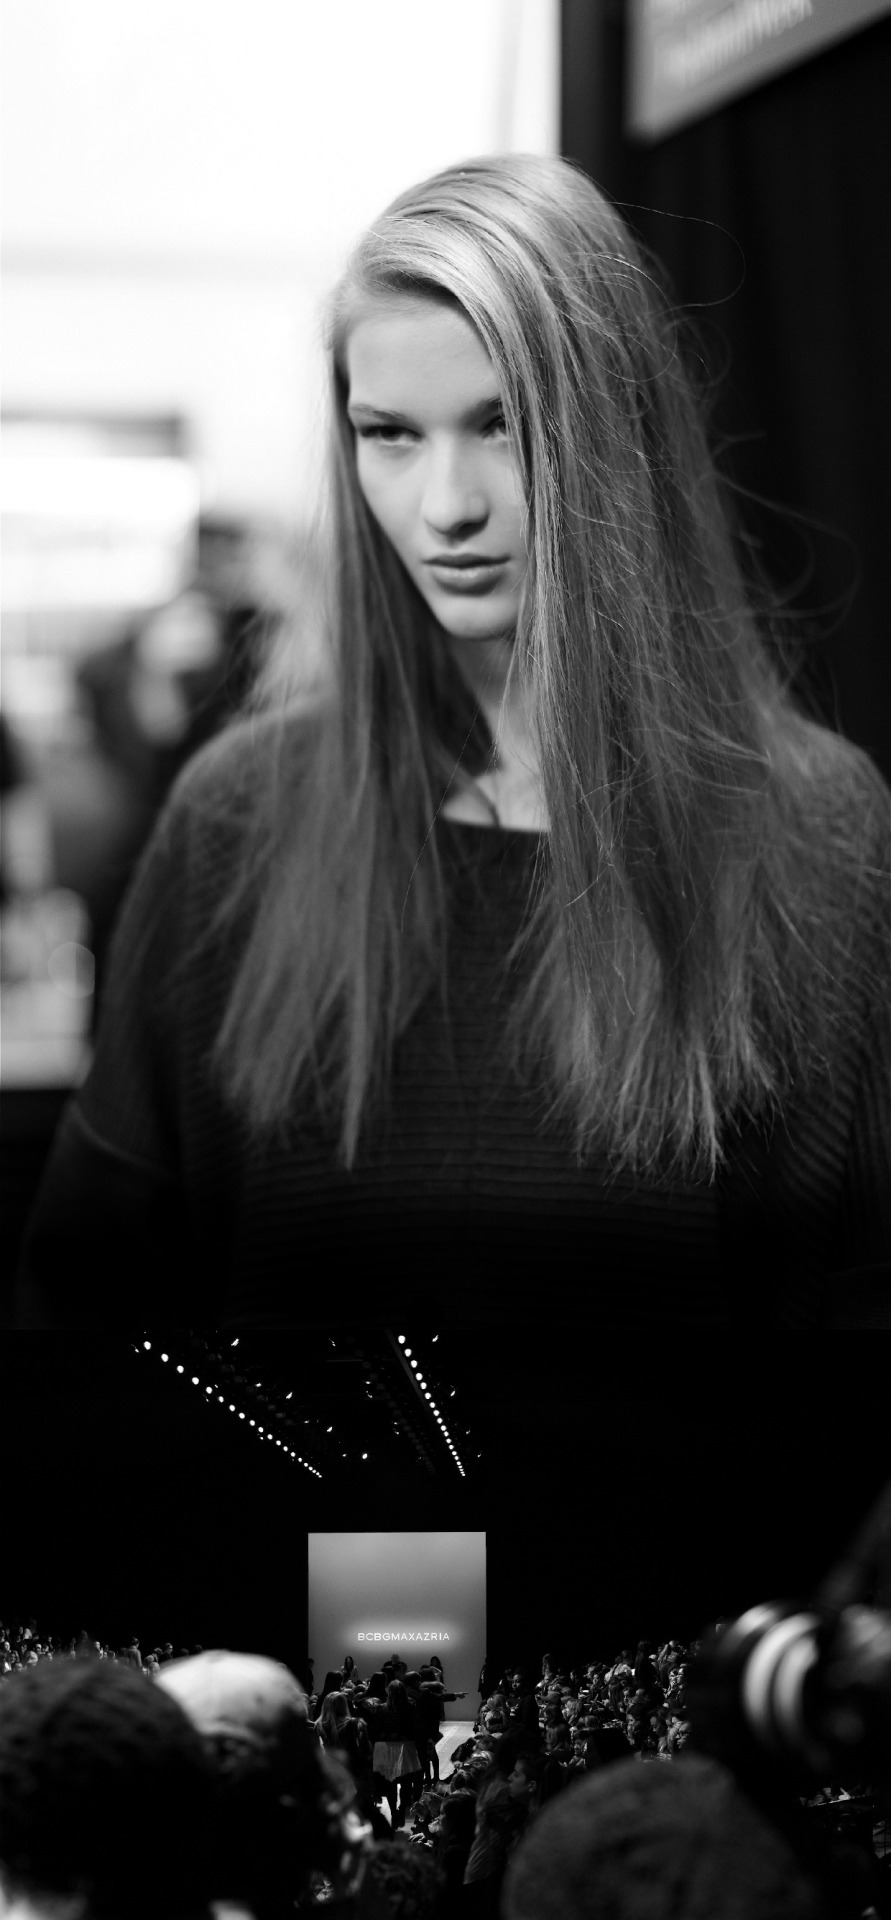 New York Fashion Week BCBG Max Azria F/W 2013 Backstage and Before The Show at The Theatre at Lincoln Center Find us: FACEBOOK | TWITTER | BLOGLOVIN | PINTEREST | LOOKBOOK